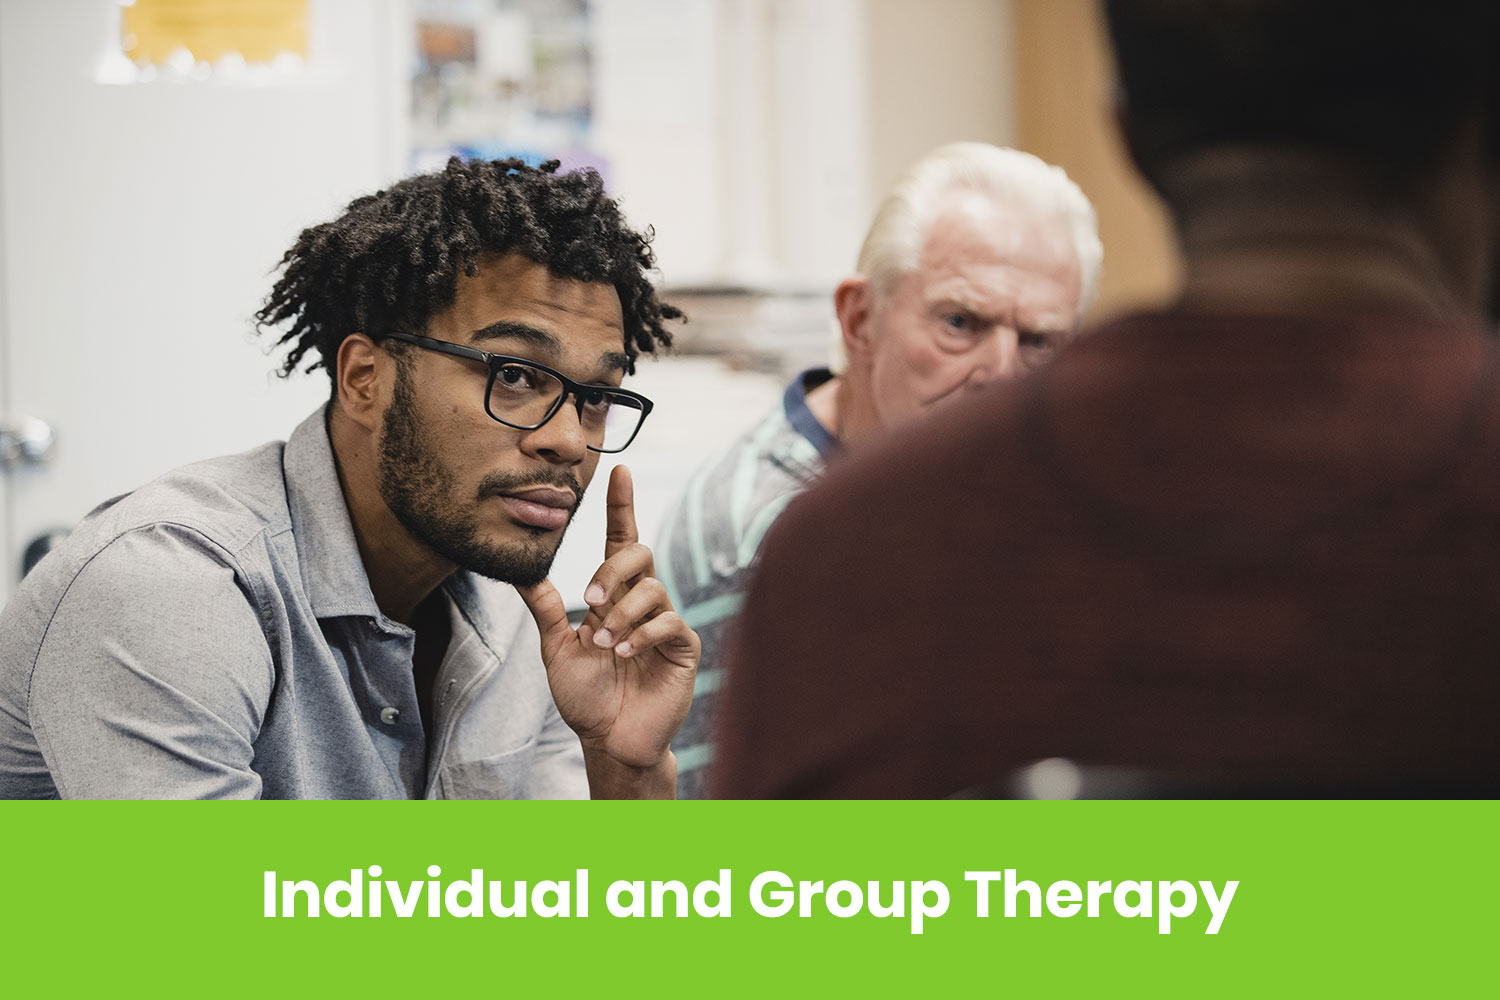 Individual and Group Therapy